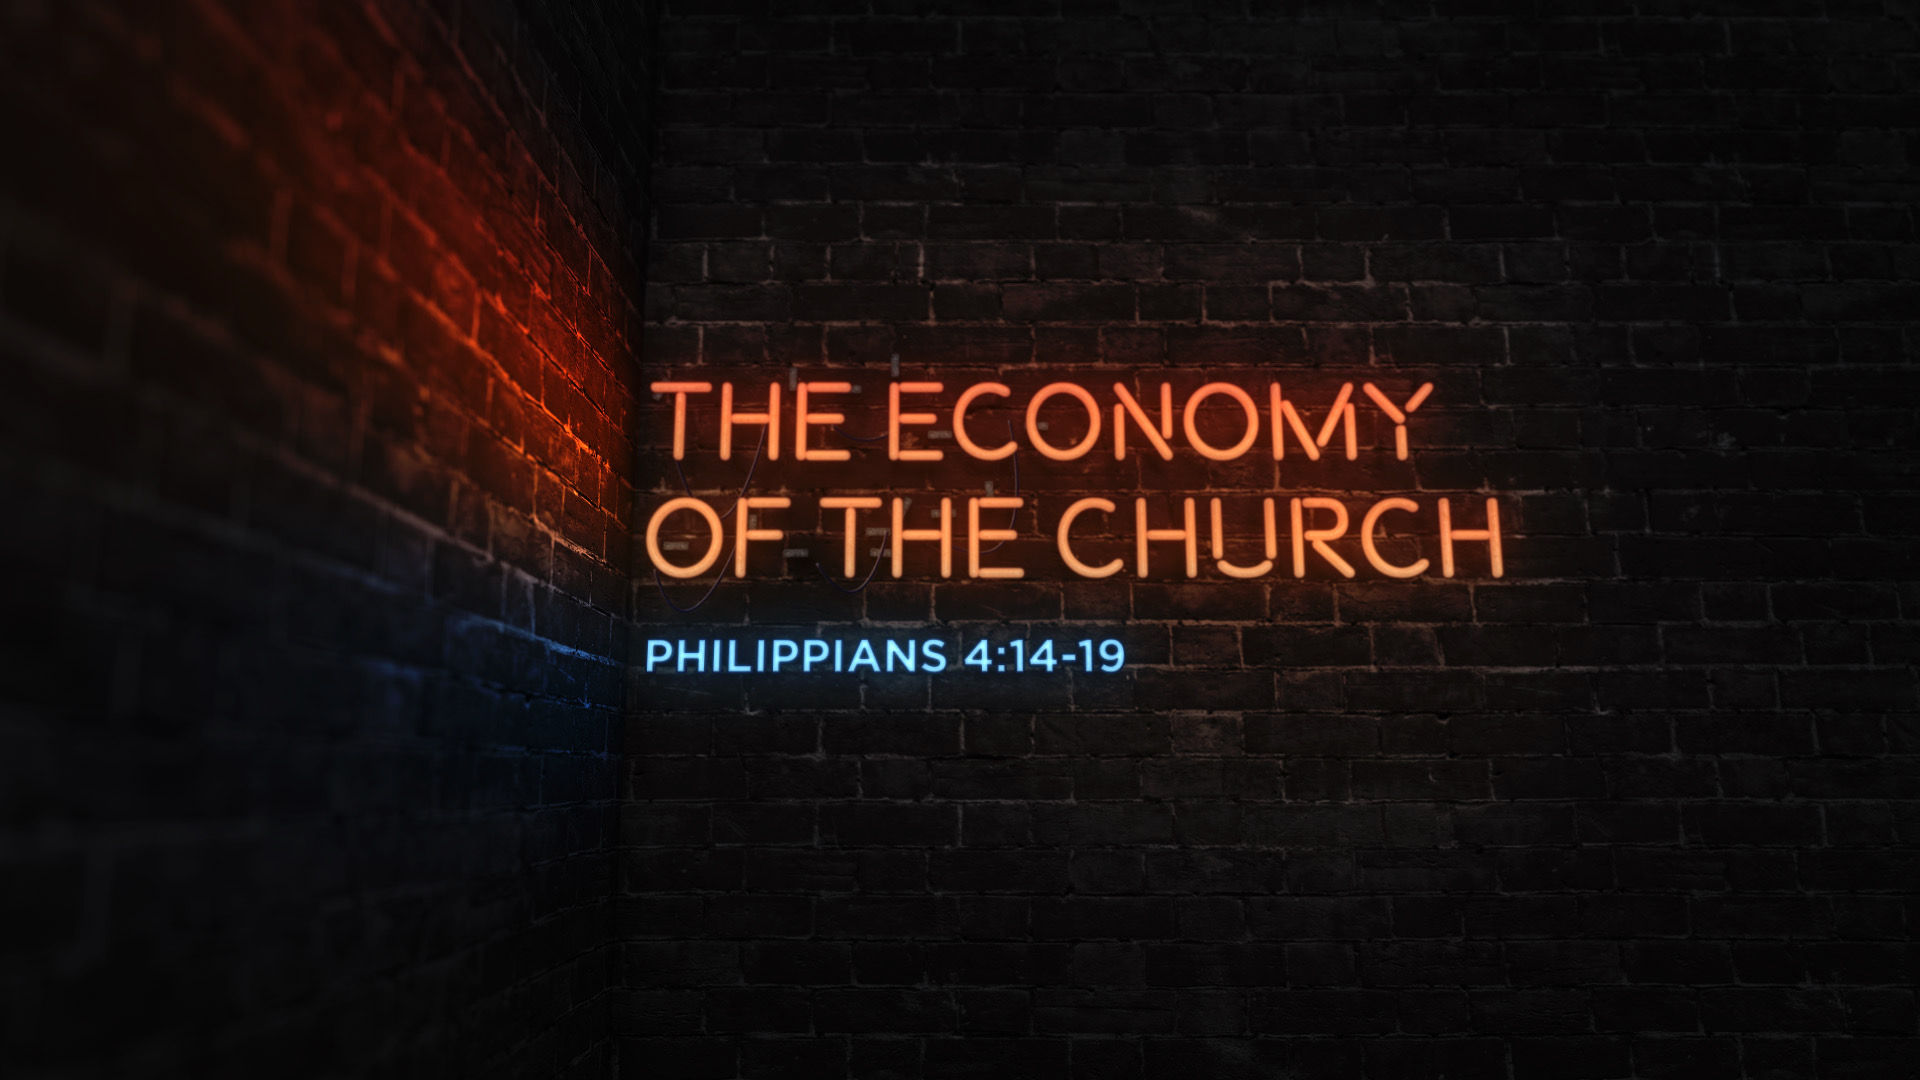 The Economy of the Church